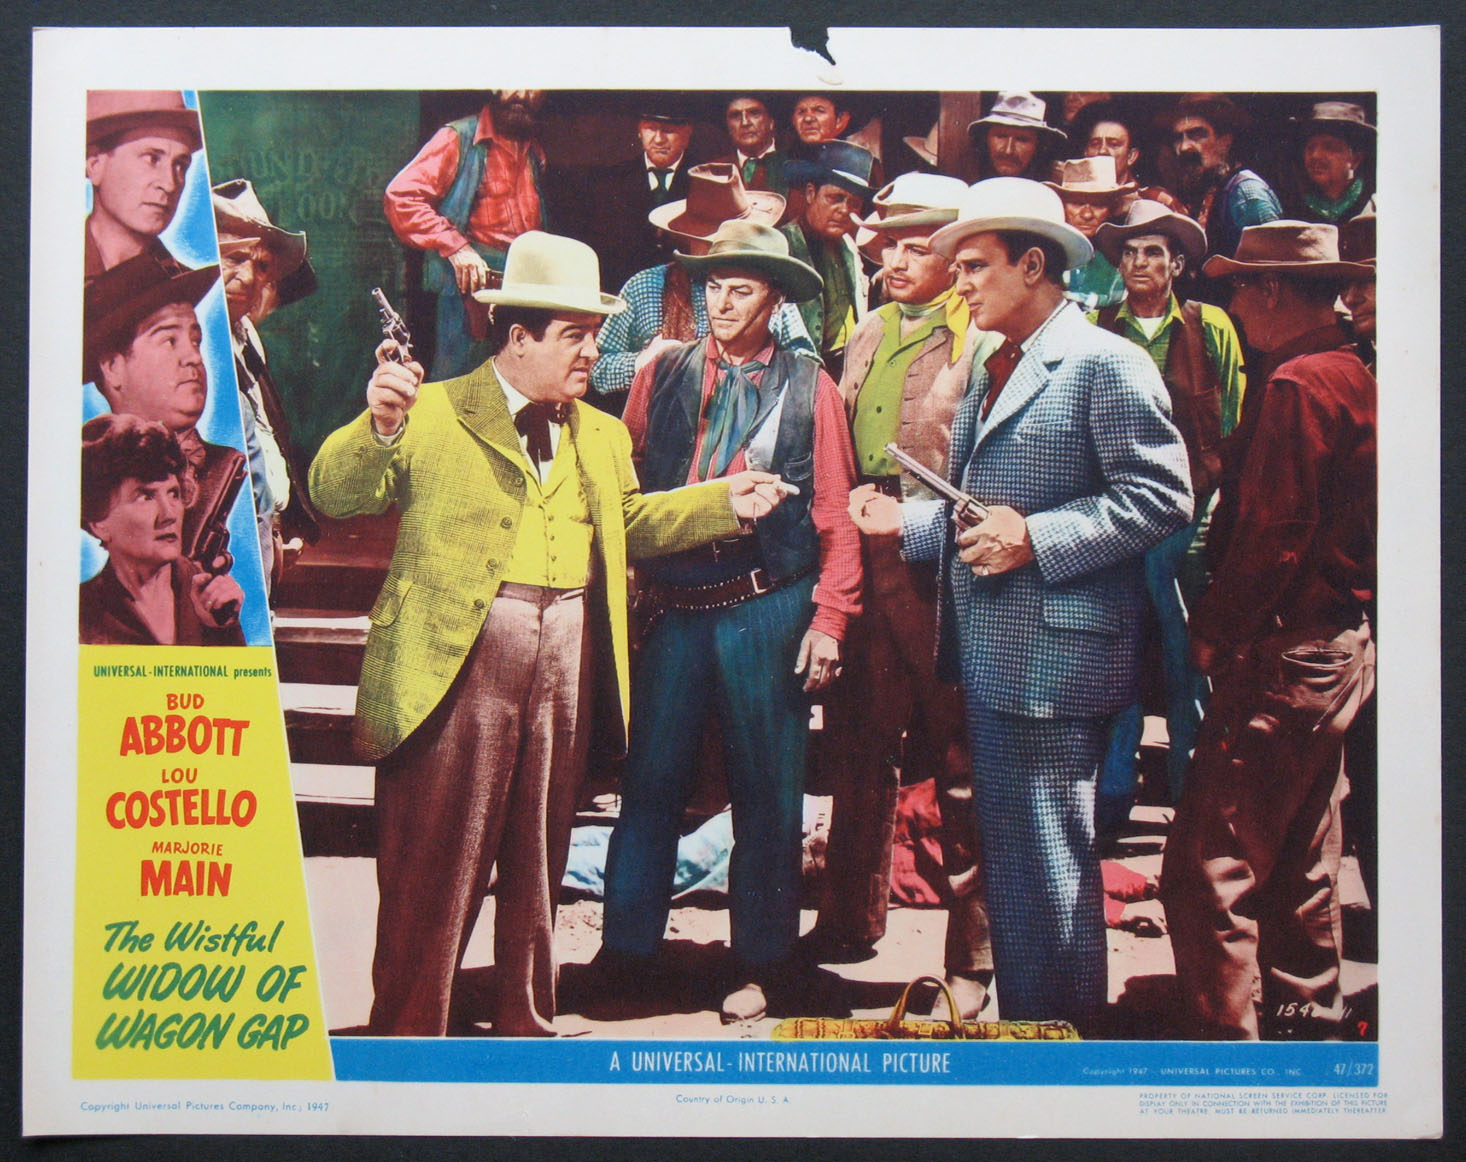 WISTFUL WIDOW OF WAGON GAP (Abbott and Costello) @ FilmPosters.com